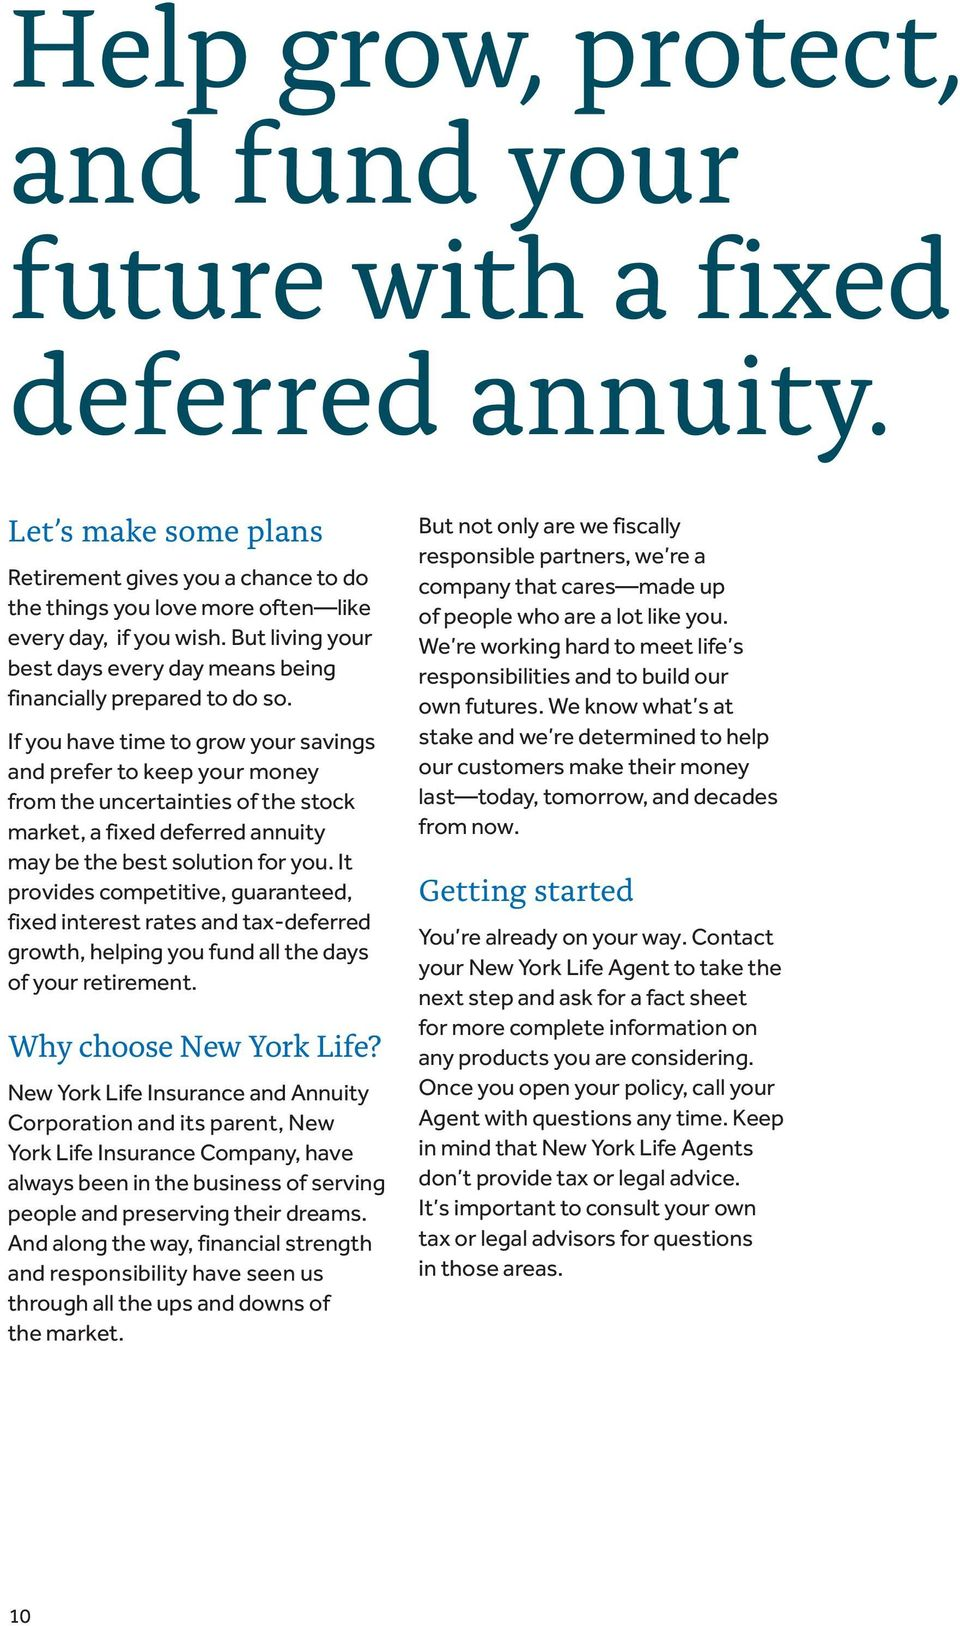 If you have time to grow your savings and prefer to keep your money from the uncertainties of the stock market, a fixed deferred annuity may be the best solution for you.